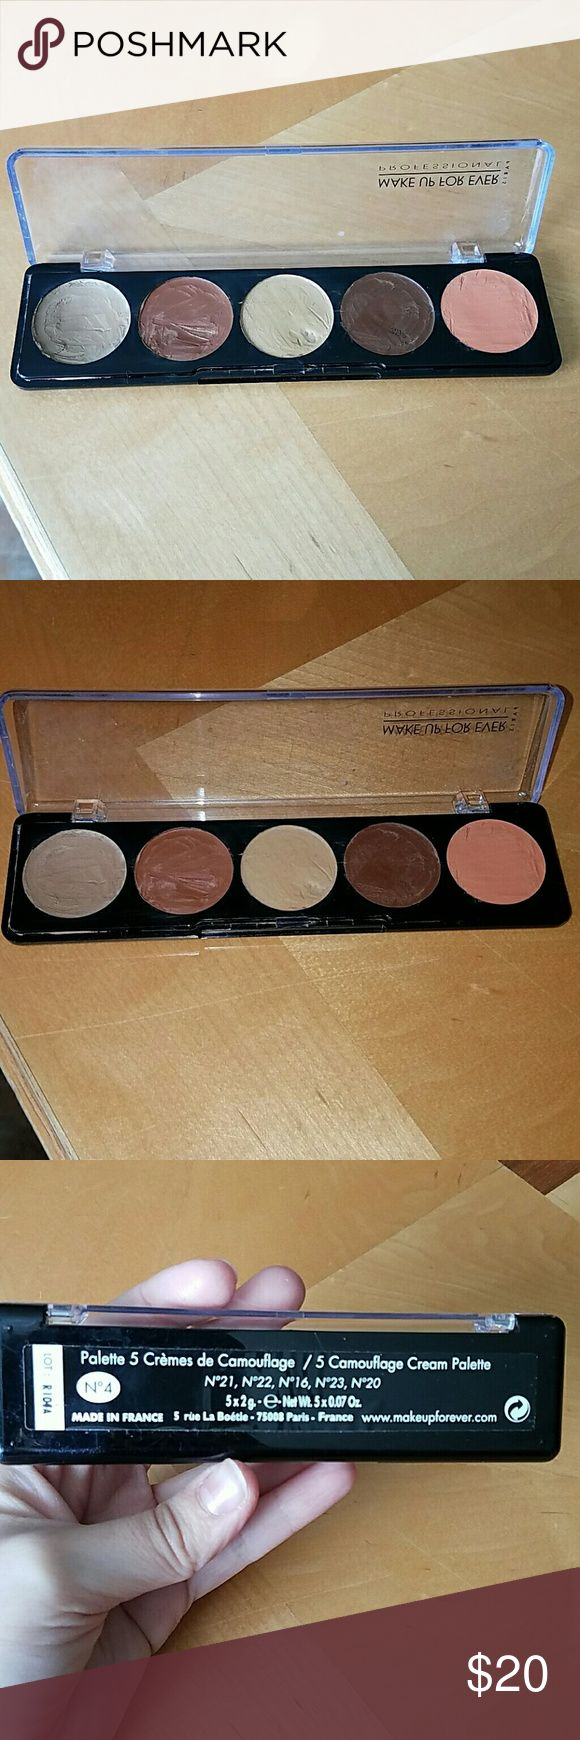 Makeup Forever Camouflage Cream Palette Deeper toned concealer palette from Makeup Forever. Only used for freelancing with clients, no personal use. Always used with sterile spatula and alcohol. Palette is still nearly full. Makeup Forever Makeup Concealer